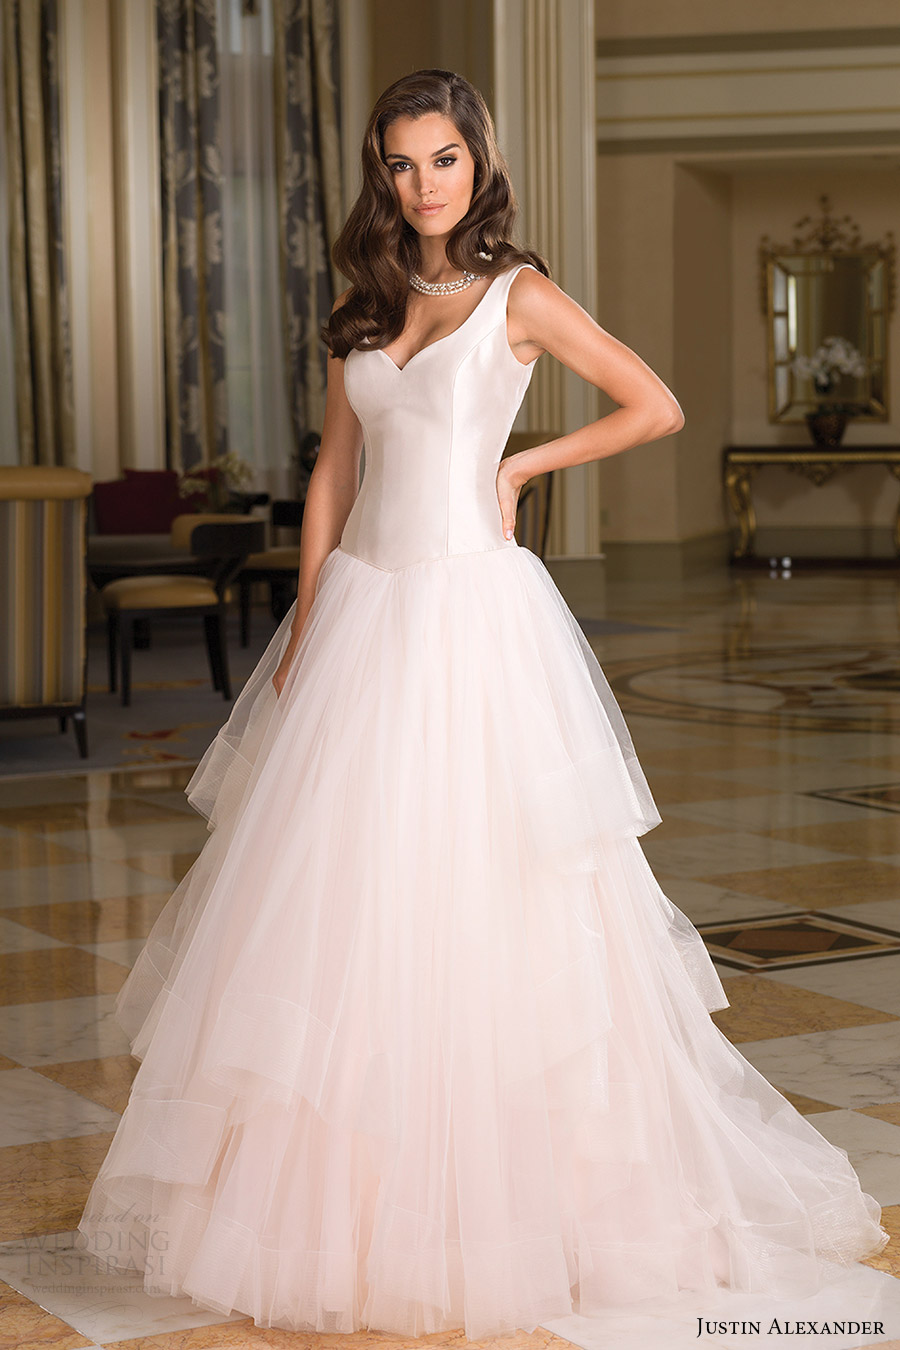 a4c0303533de justin alexander bridal fall 2016 sleeveless straps vneck basque waist  tulle ball gown wedding dress (